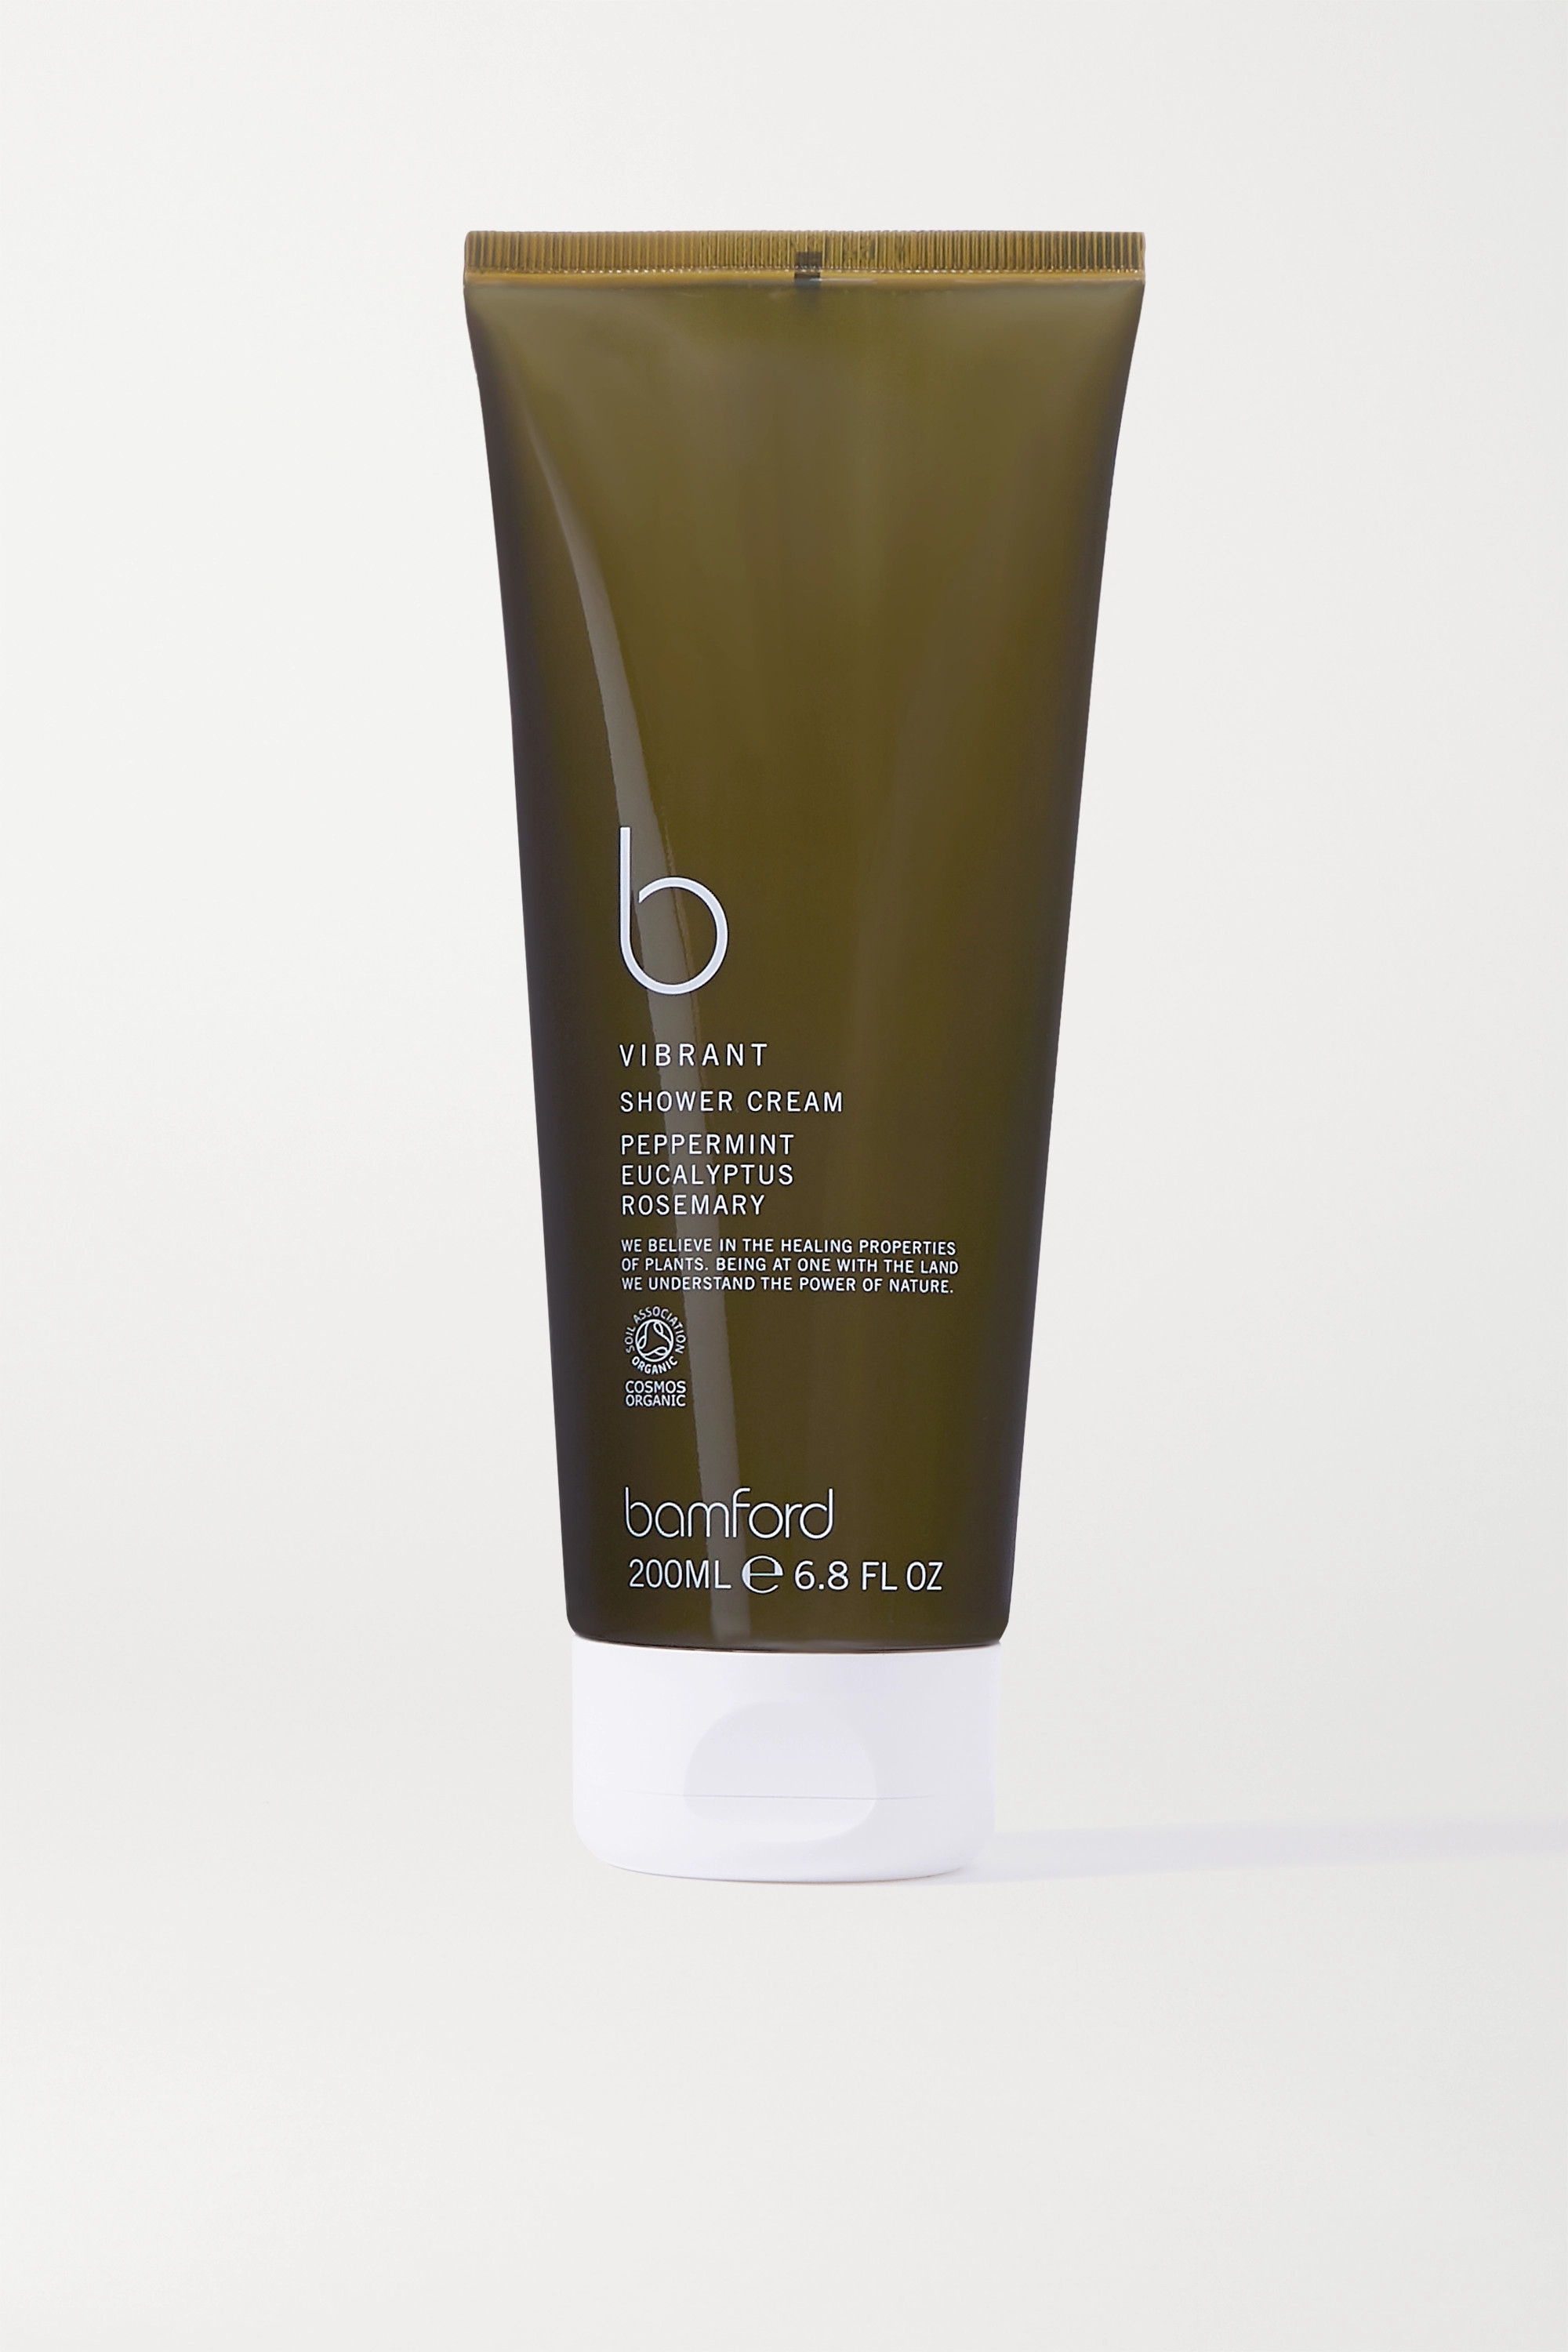 Bamford B Vibrant Shower Cream, 200ml